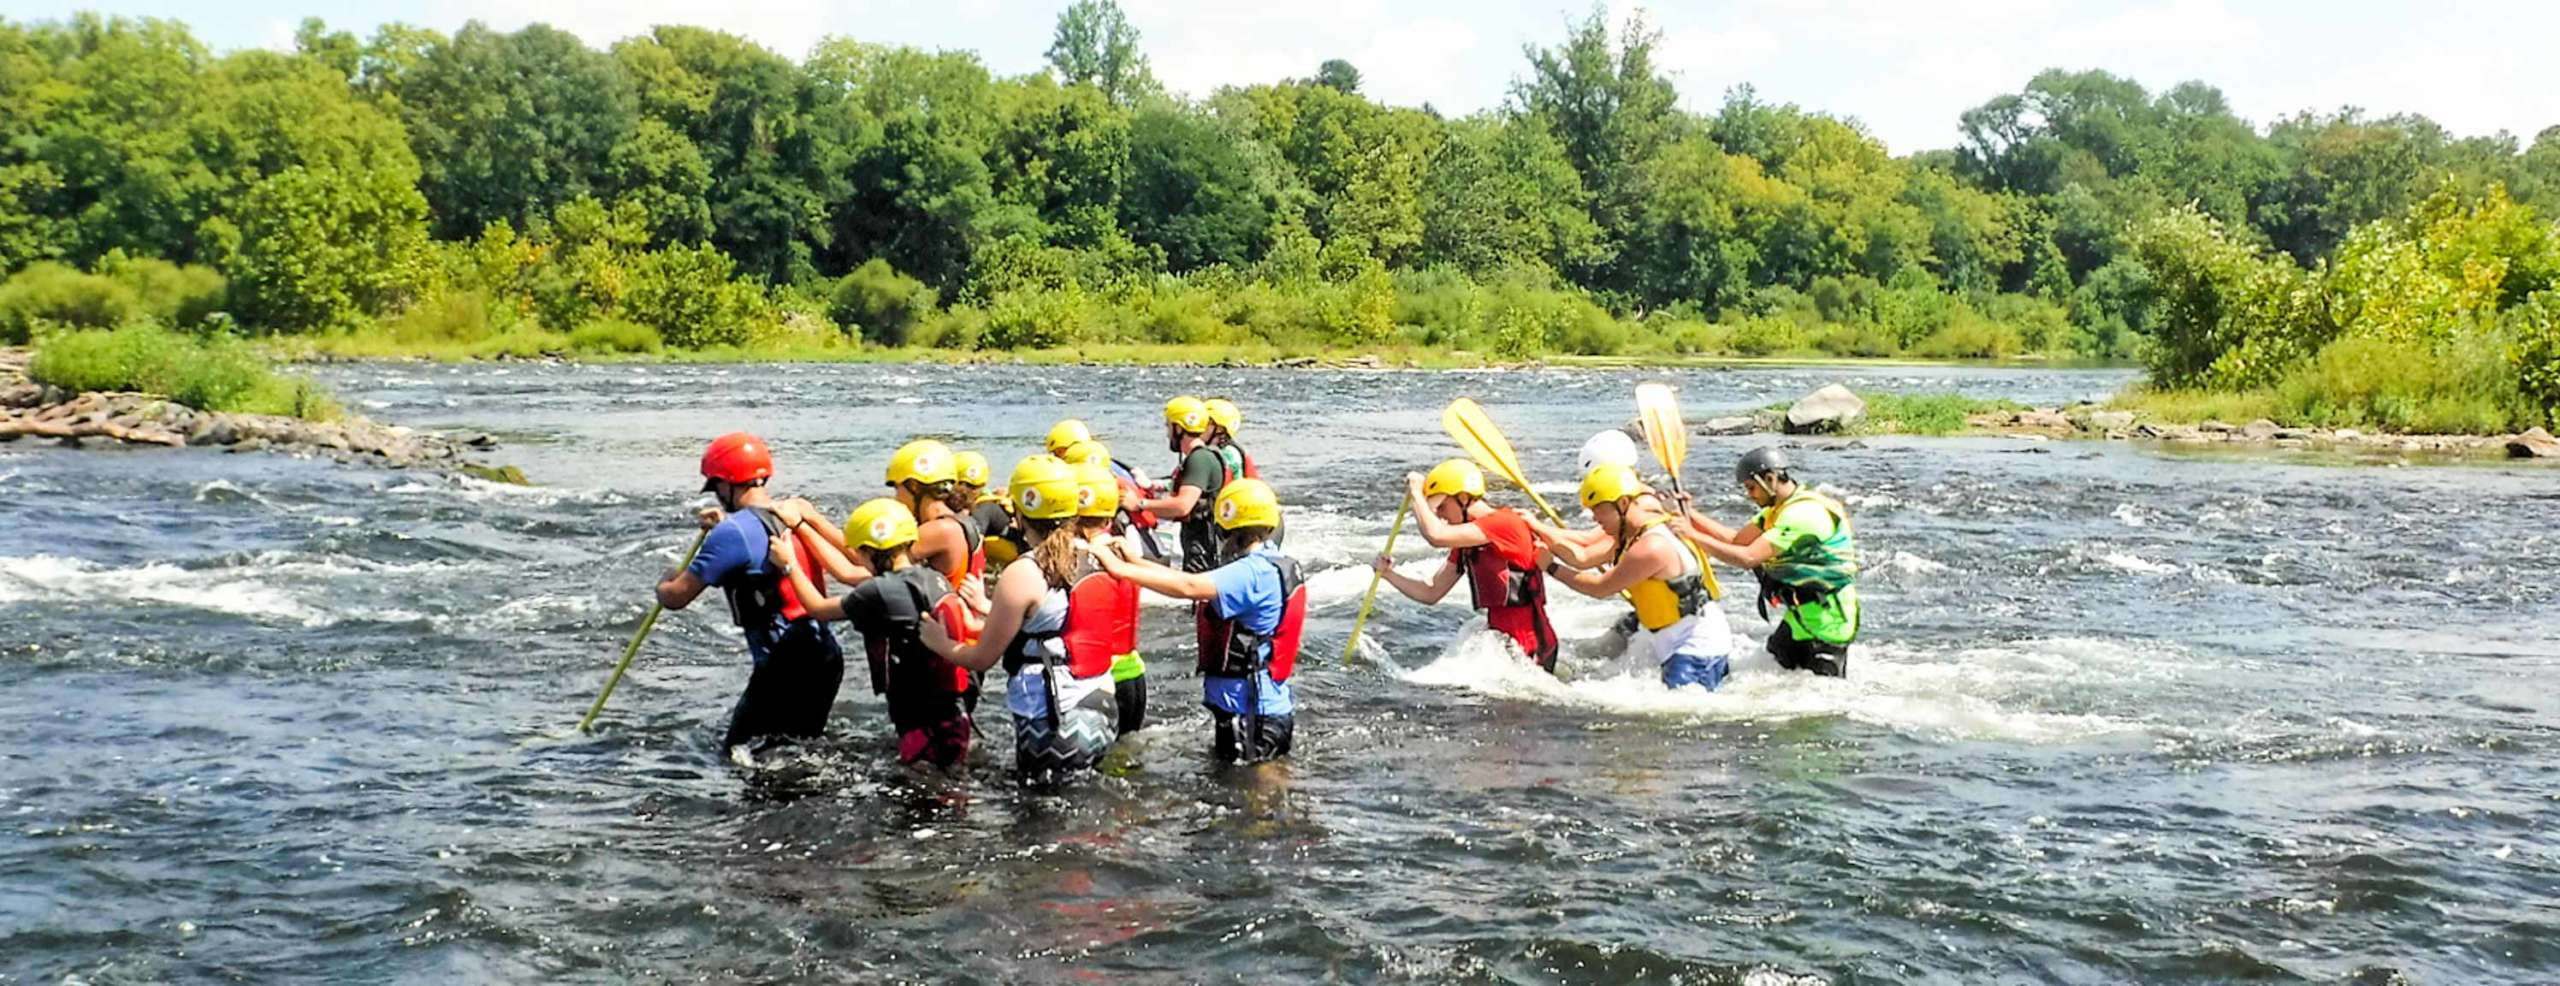 Group of youth learning to cross the river all holding onto each other